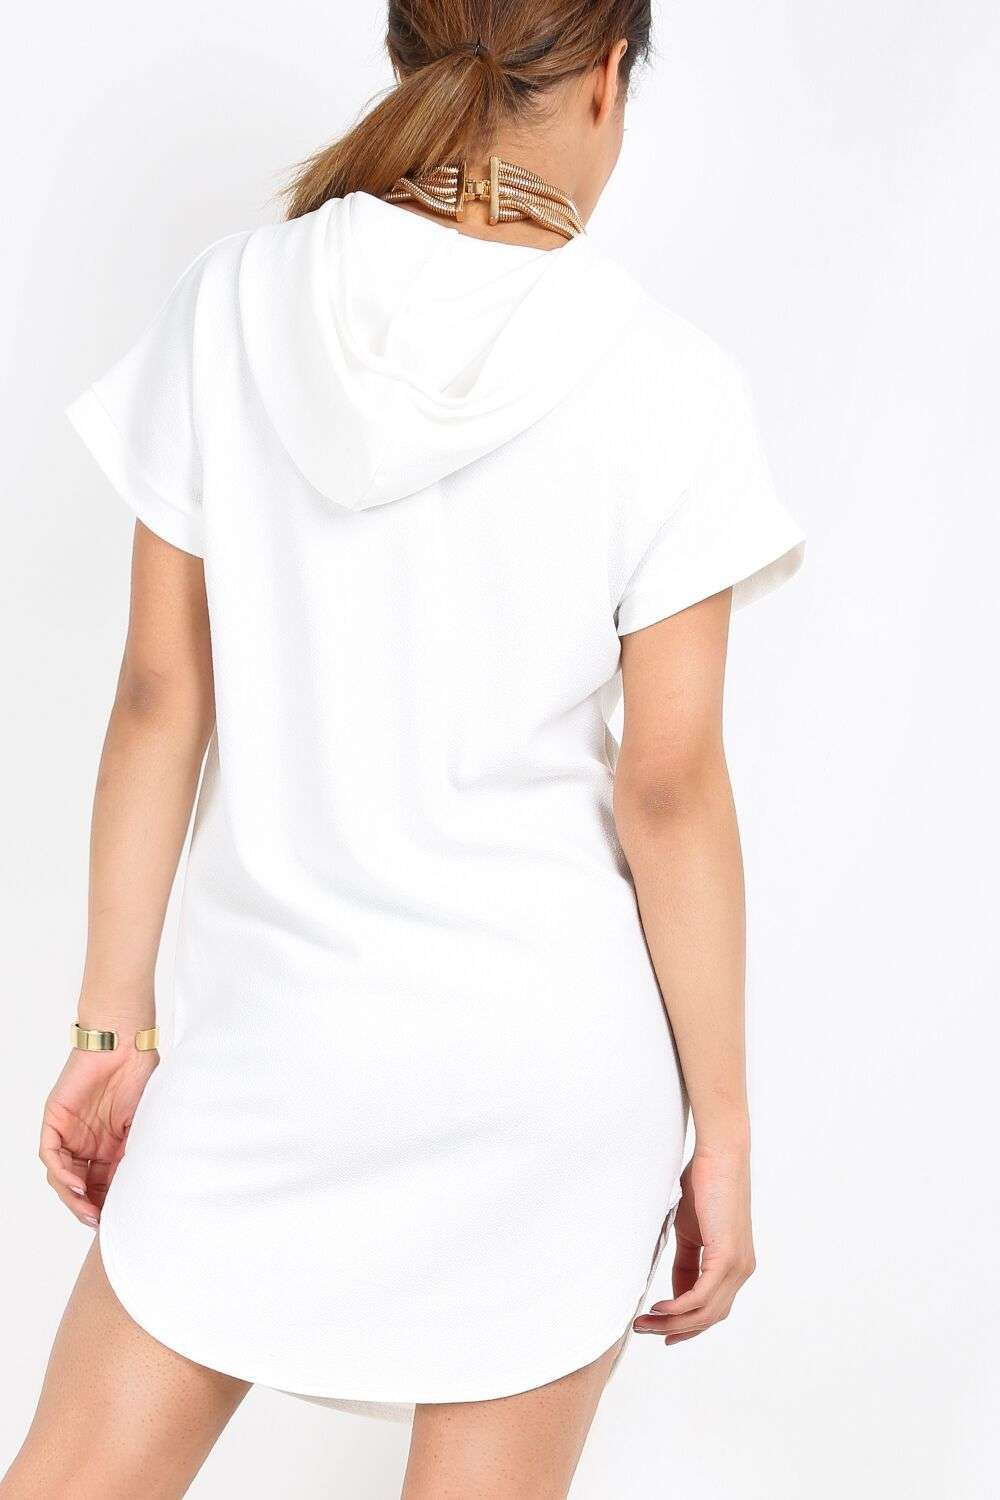 Prisca Hooded Sweater Dress - bejealous-com